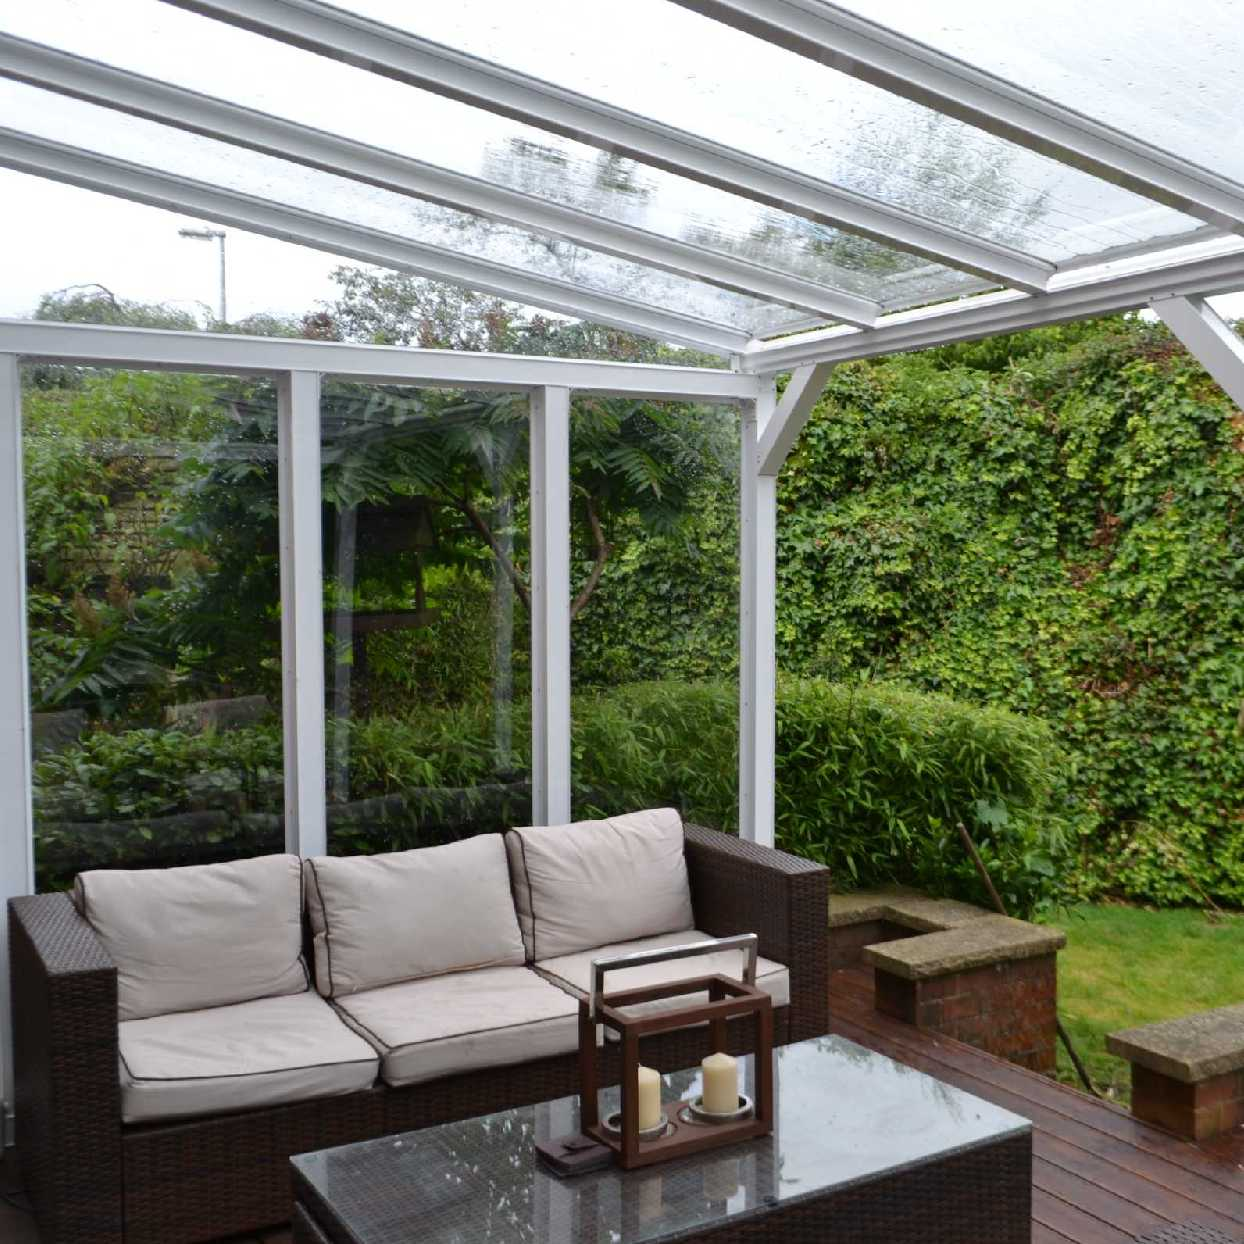 Great selection of Omega Smart White Lean-To Canopy with 16mm Polycarbonate Glazing - 6.0m (W) x 3.5m (P), (3) Supporting Posts